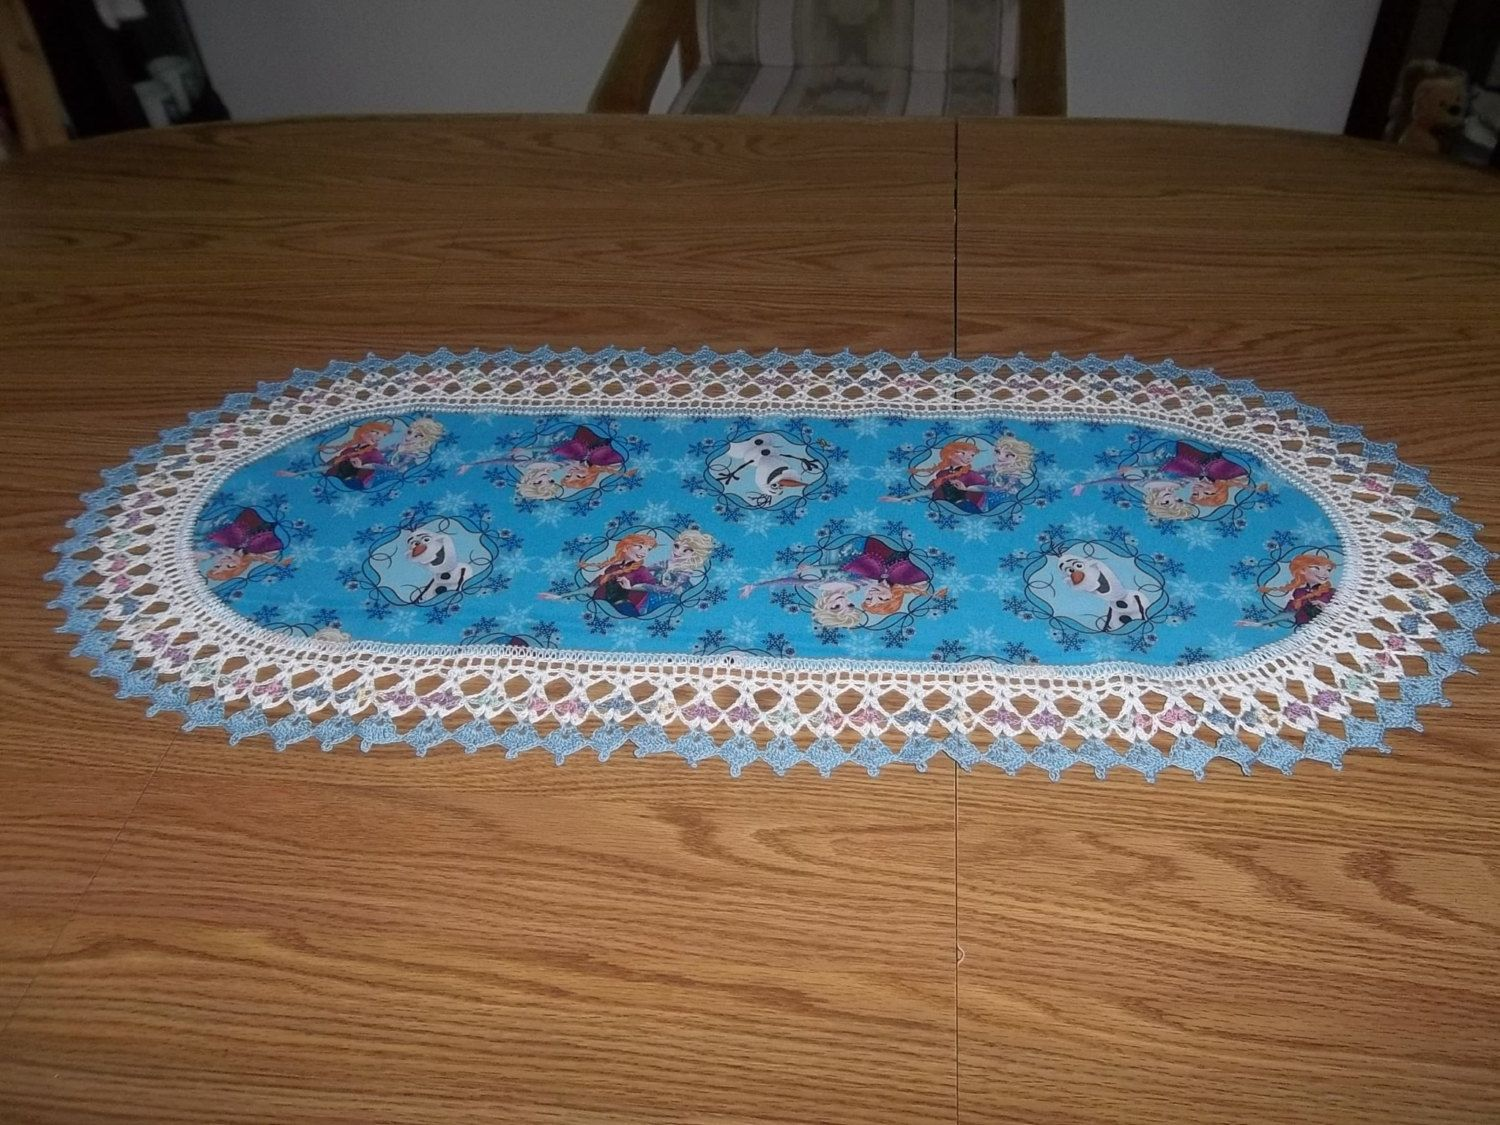 Crocheted Table Runner Dresser Scarf Centerpiece Disney Frozen With Elsa Anna And Olaf Fabric Center